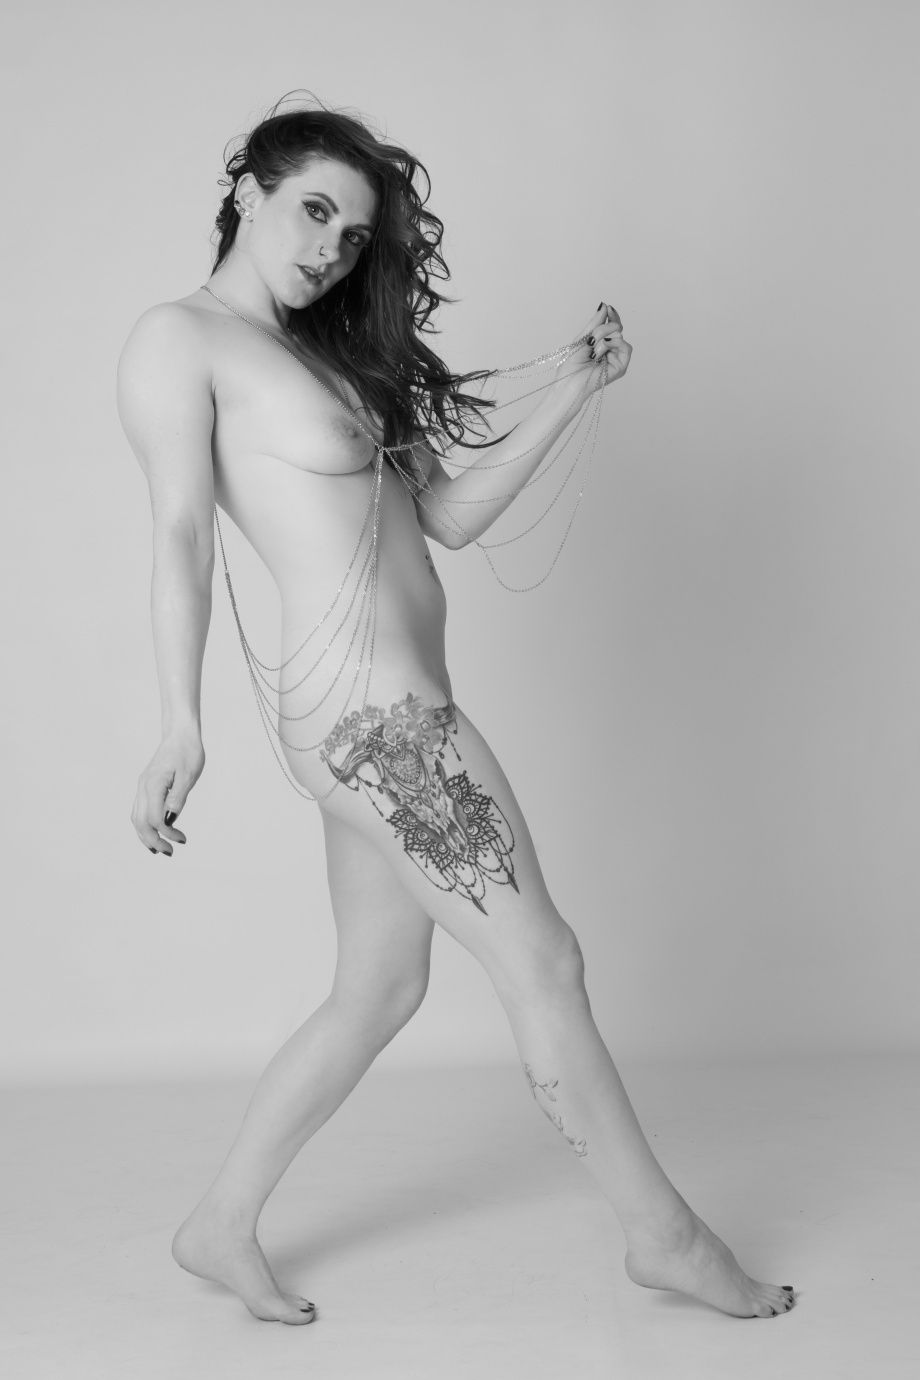 cherry chains, pole, dance, pole training, topless, black and white, implied, glamour, studio, nude